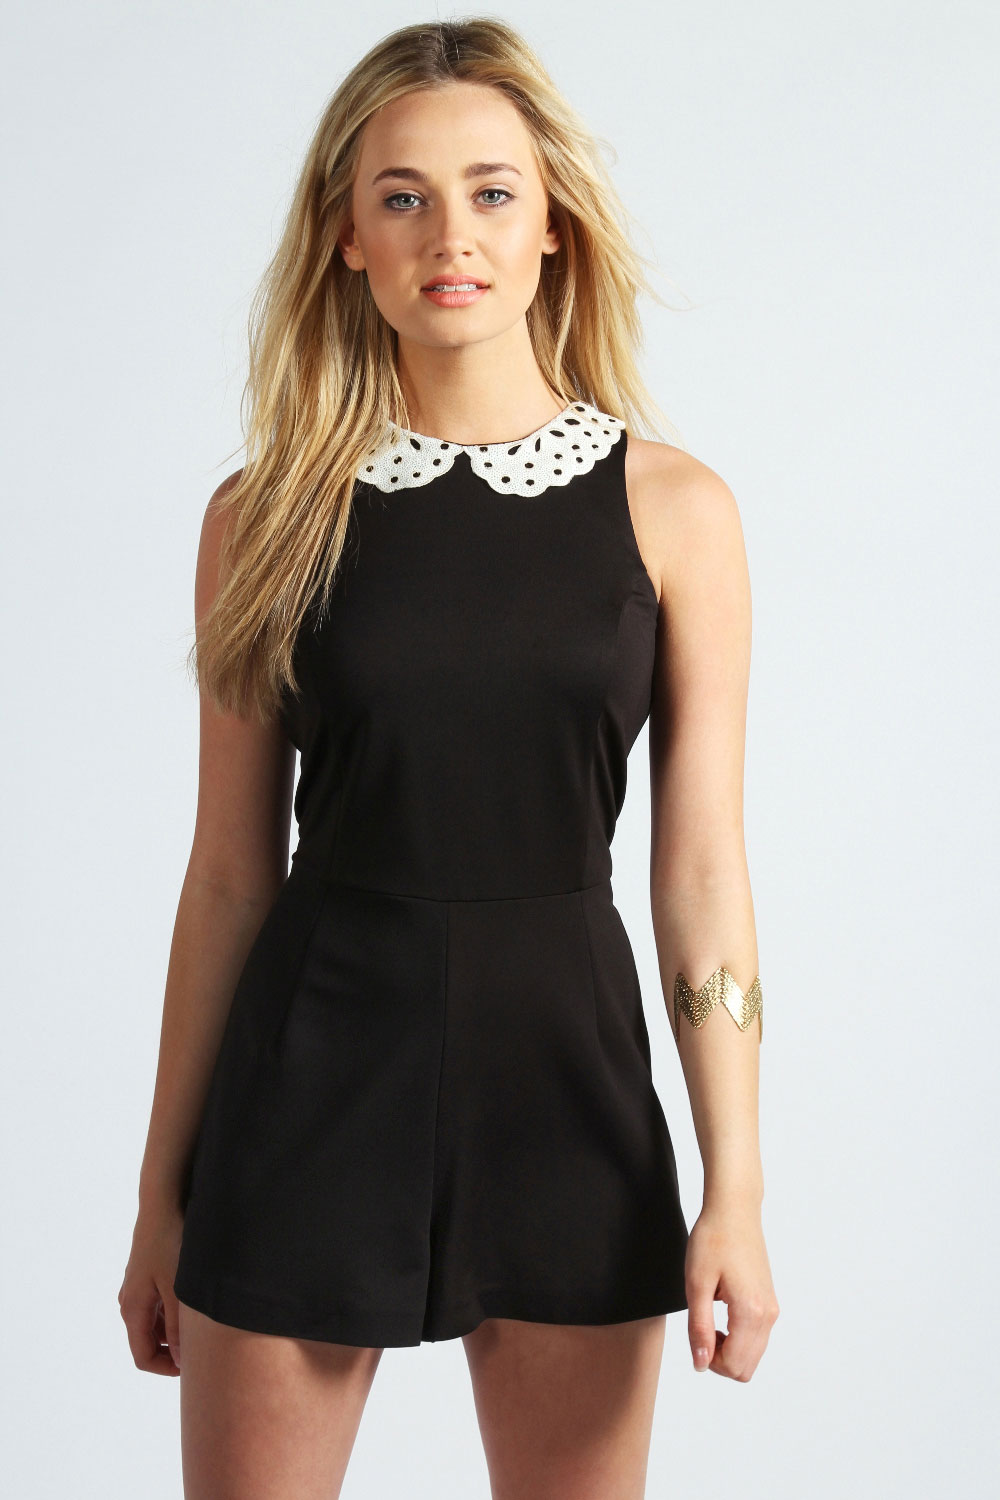 womens playsuits image is loading boohoo-michaela-sequin-collar-cut-out-shoulder-playsuit- AYKDOOY